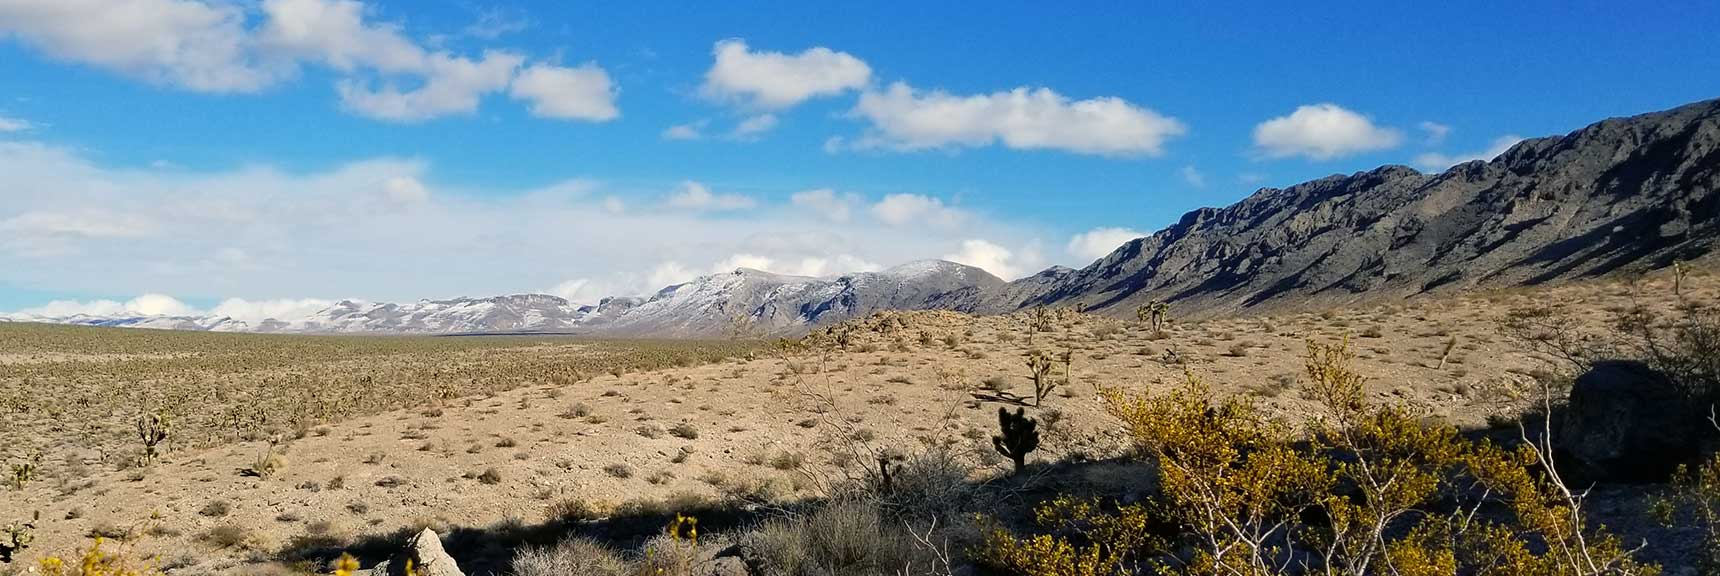 View Along Fossil Ridge and Beyond South East of the Sheep Range in the Desert National Wildlife Refuge, Nevada